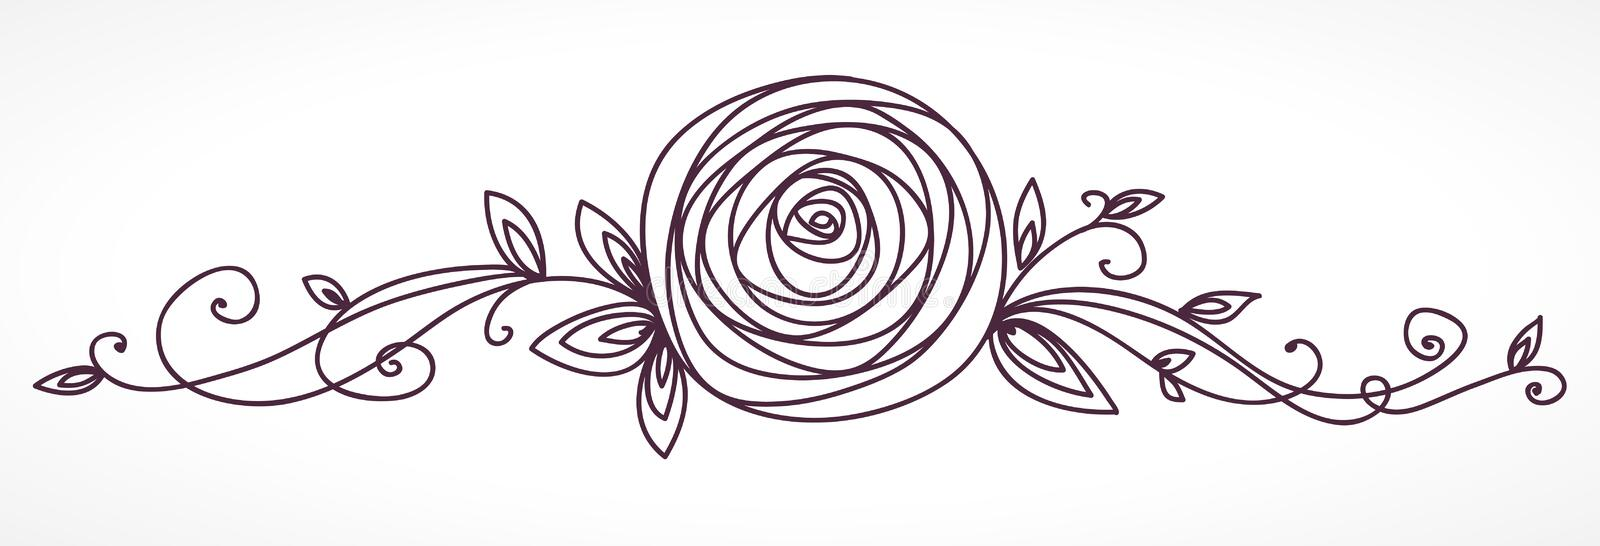 Rose Flower Decoratief bloemenontwerpelement royalty-vrije illustratie